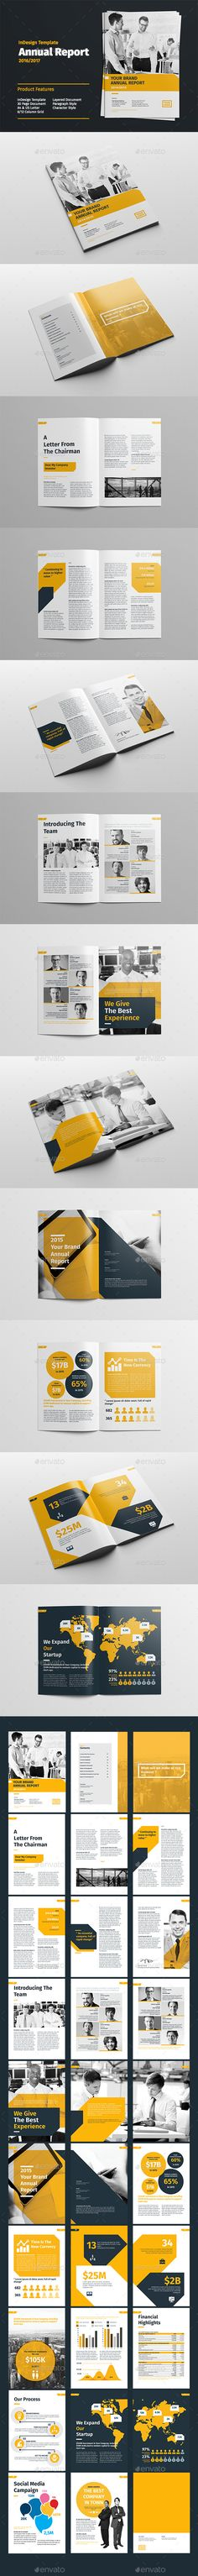 Annual Report Template #design Download: http://graphicriver.net/item/annual-report-/12402908?ref=ksioks